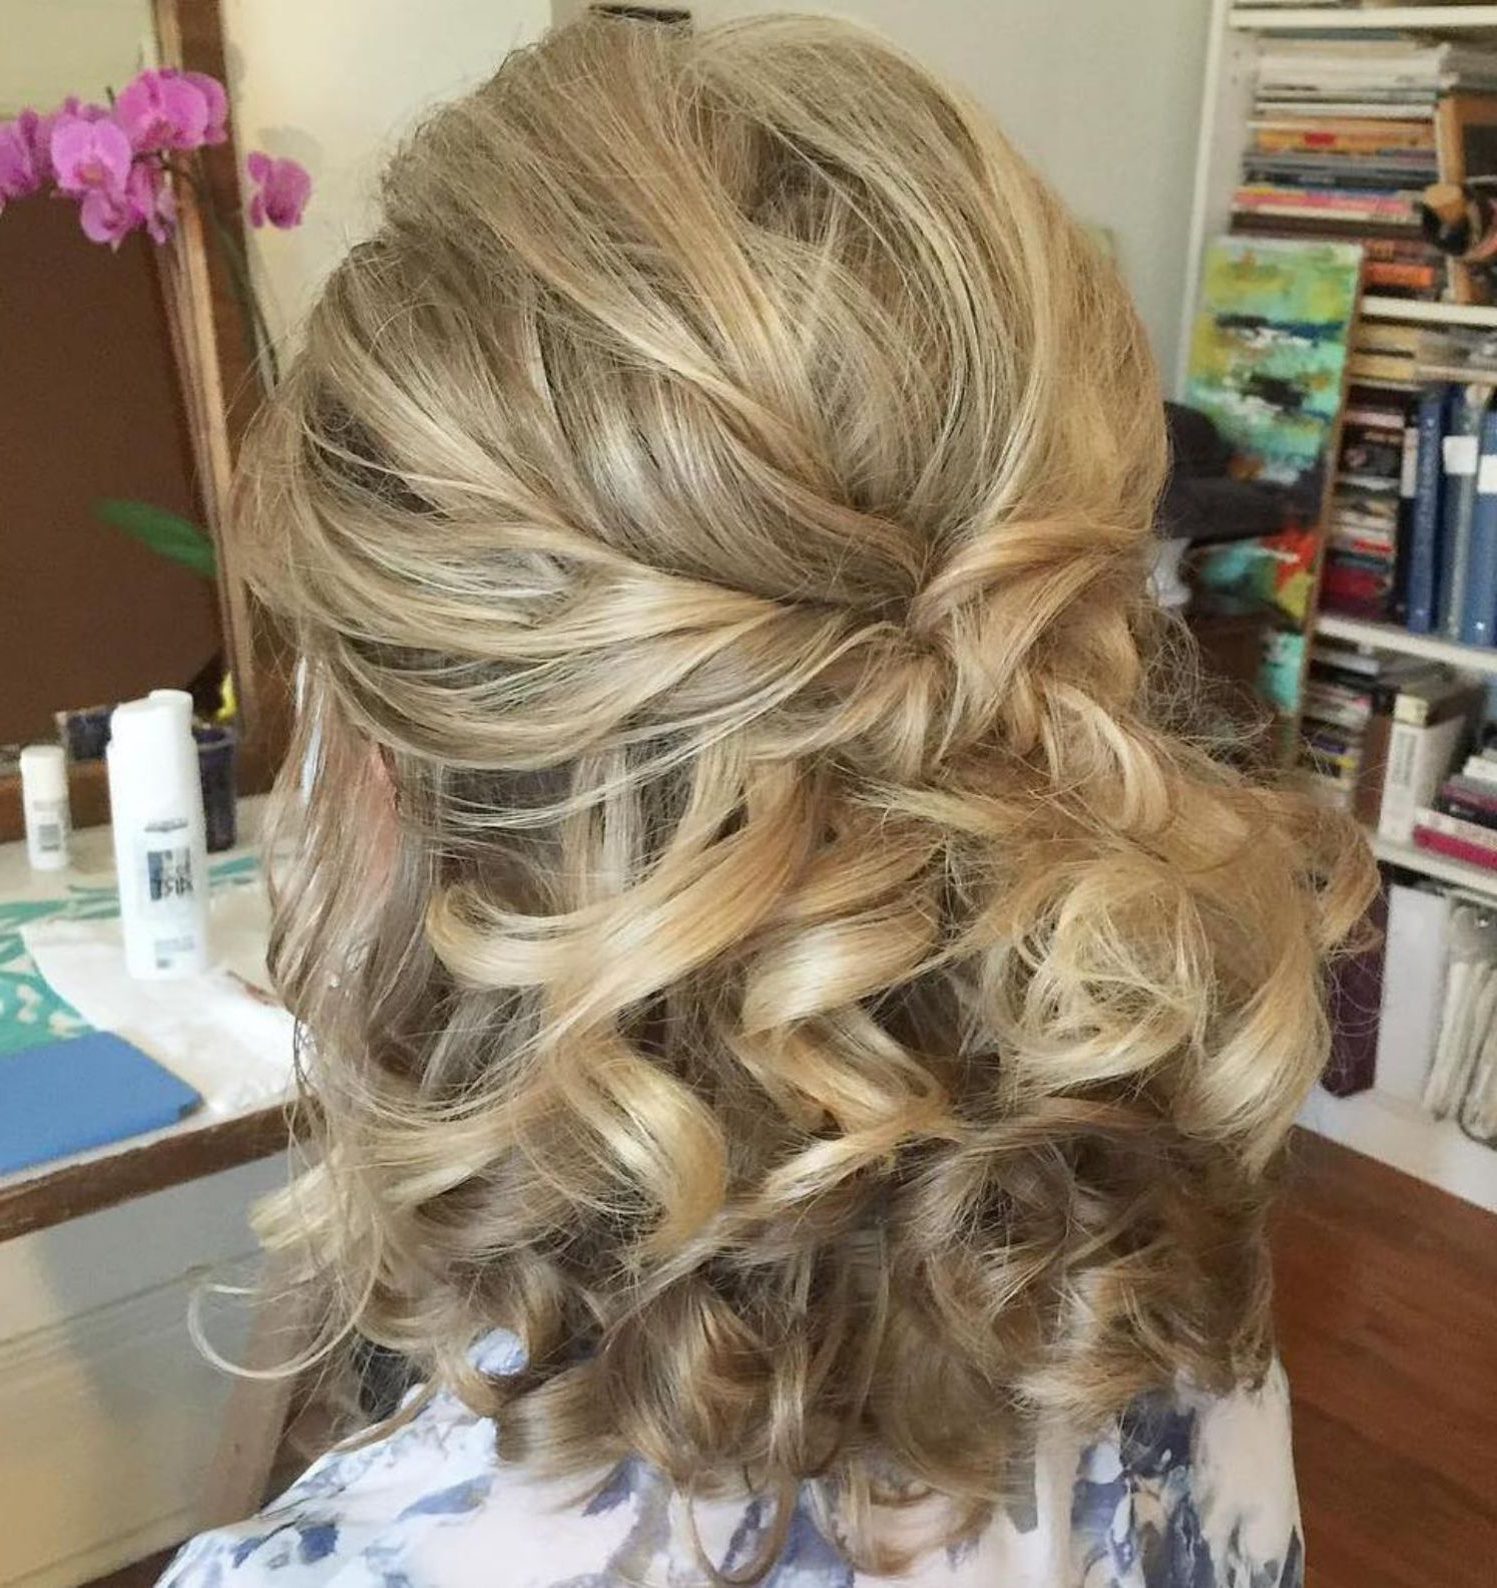 2017 Half Short Half Medium Haircuts Regarding 50 Half Updos For Your Perfect Everyday And Party Looks (View 4 of 20)